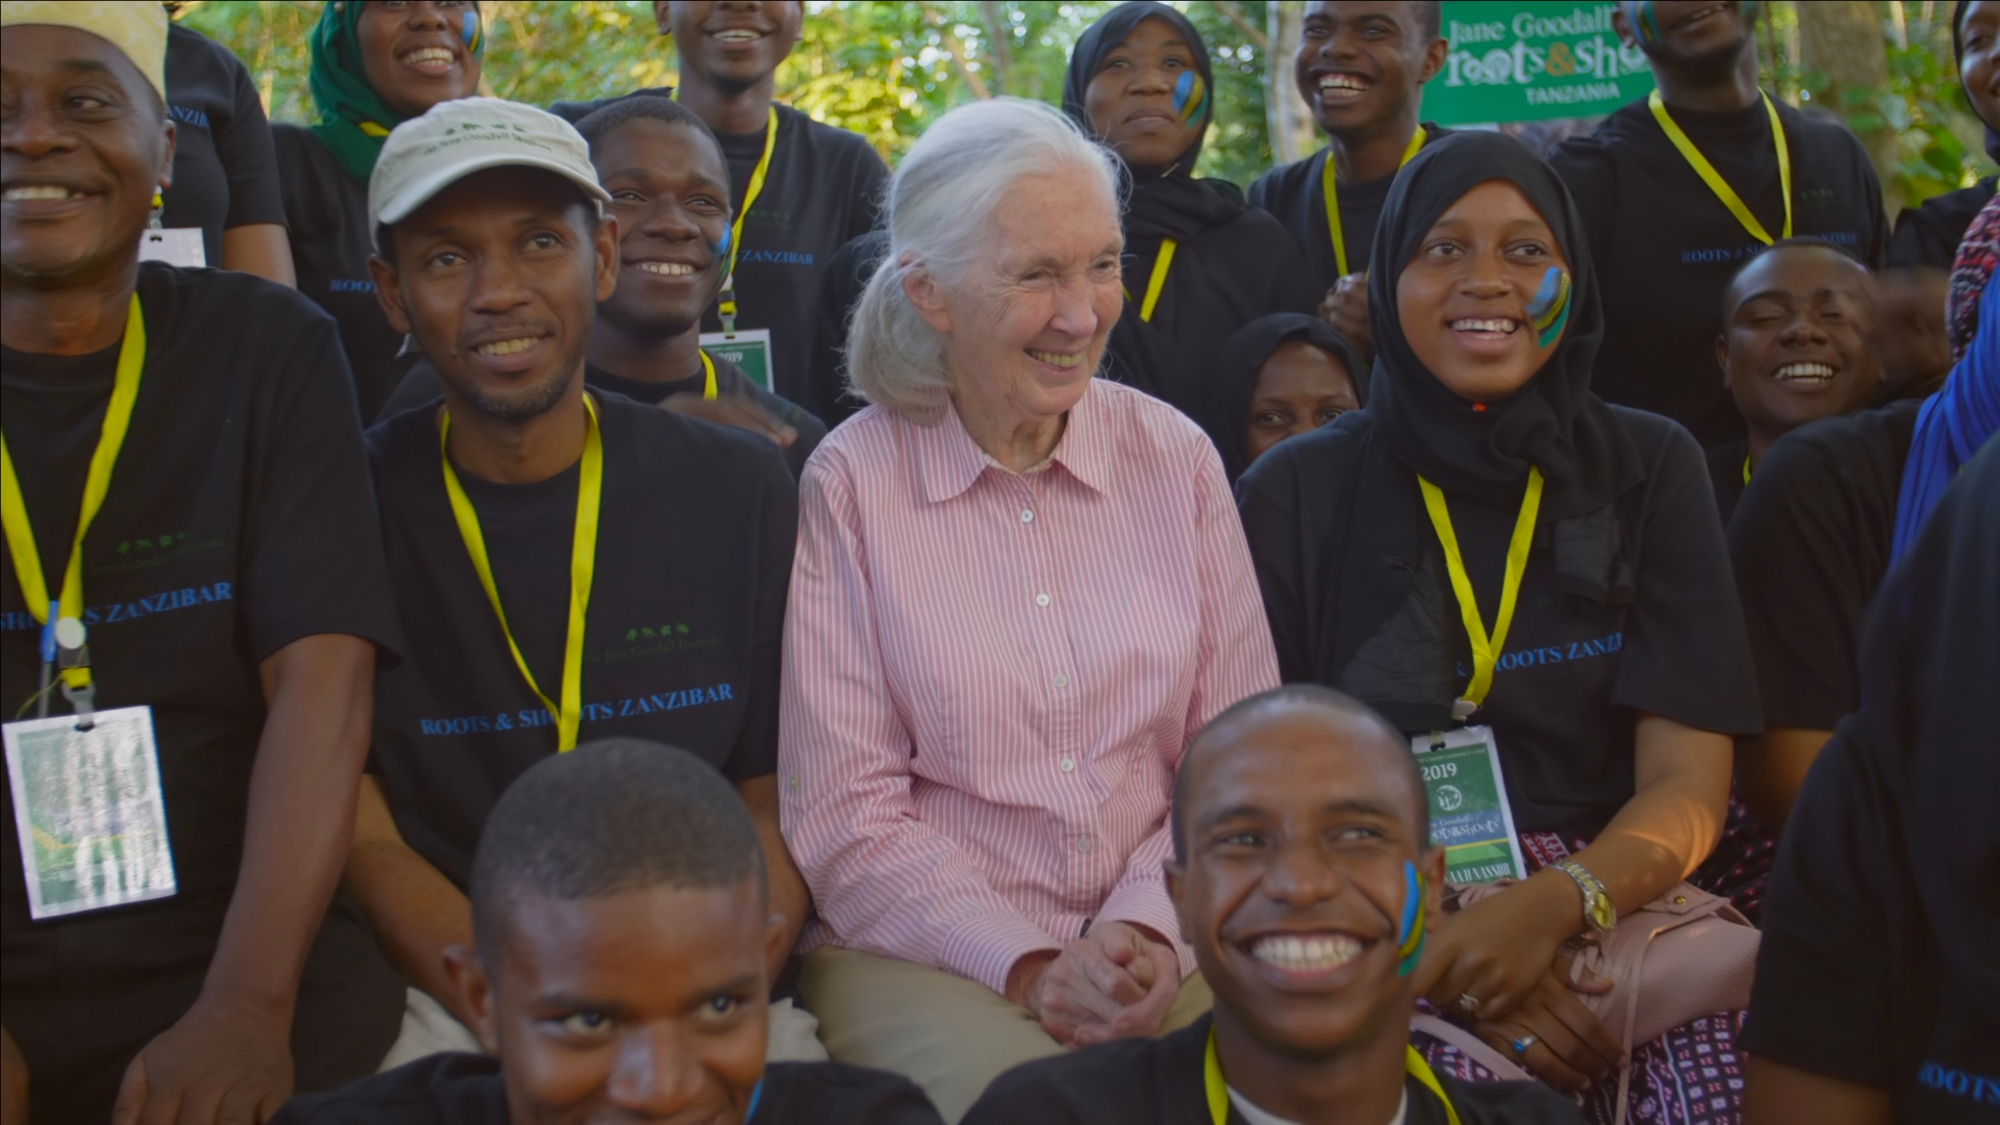 National Geographic documentary Jane Goodall: The Hope aims to empowers youth